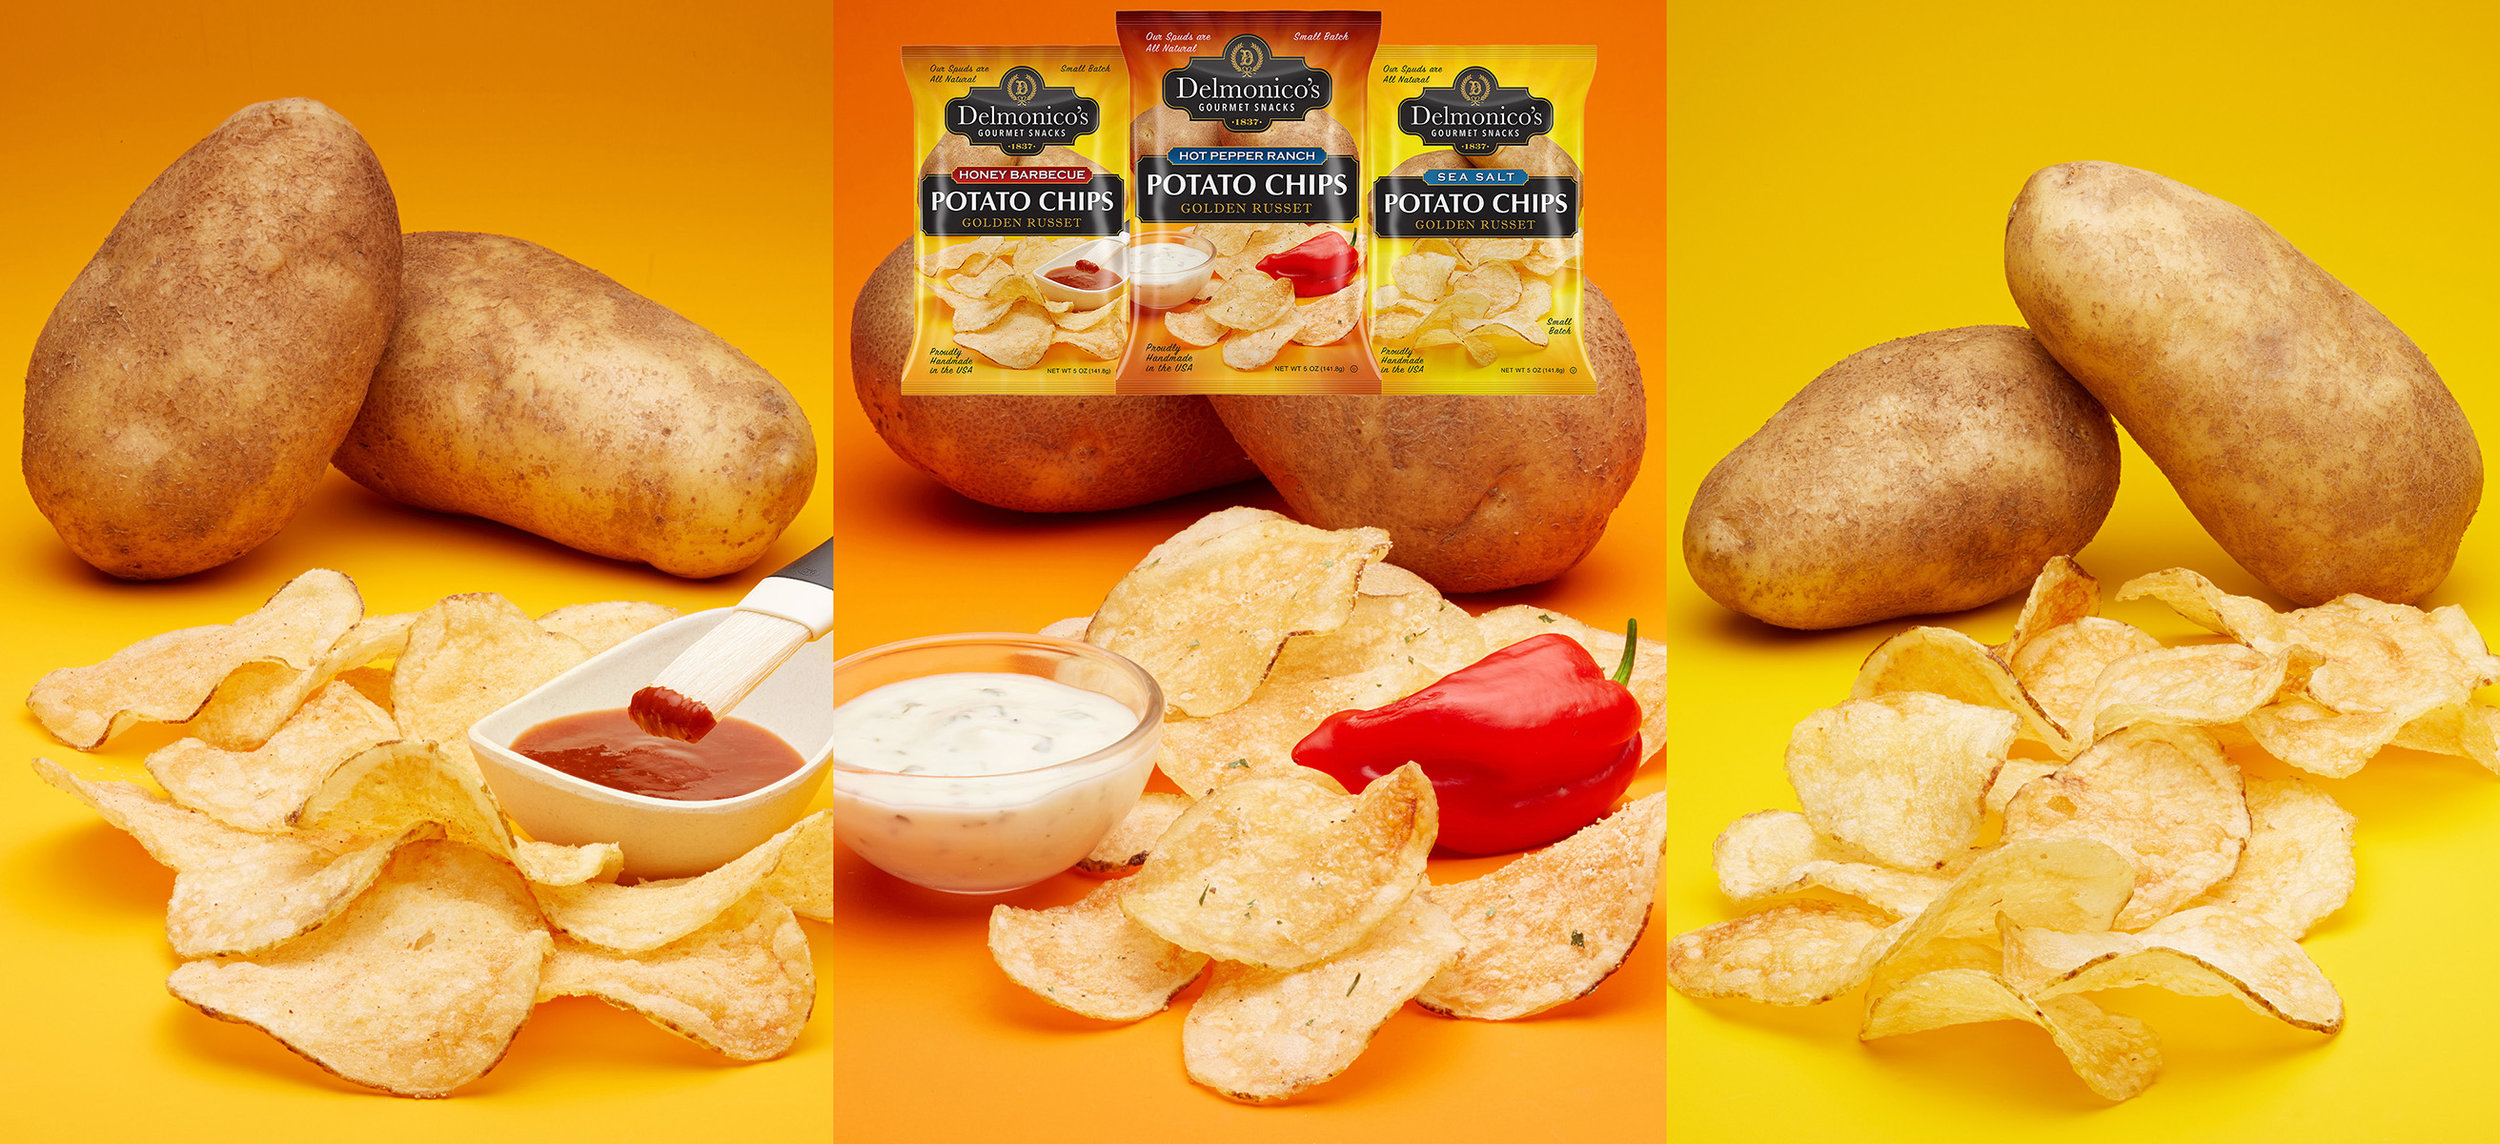 trio_potato_chips_crop.jpg